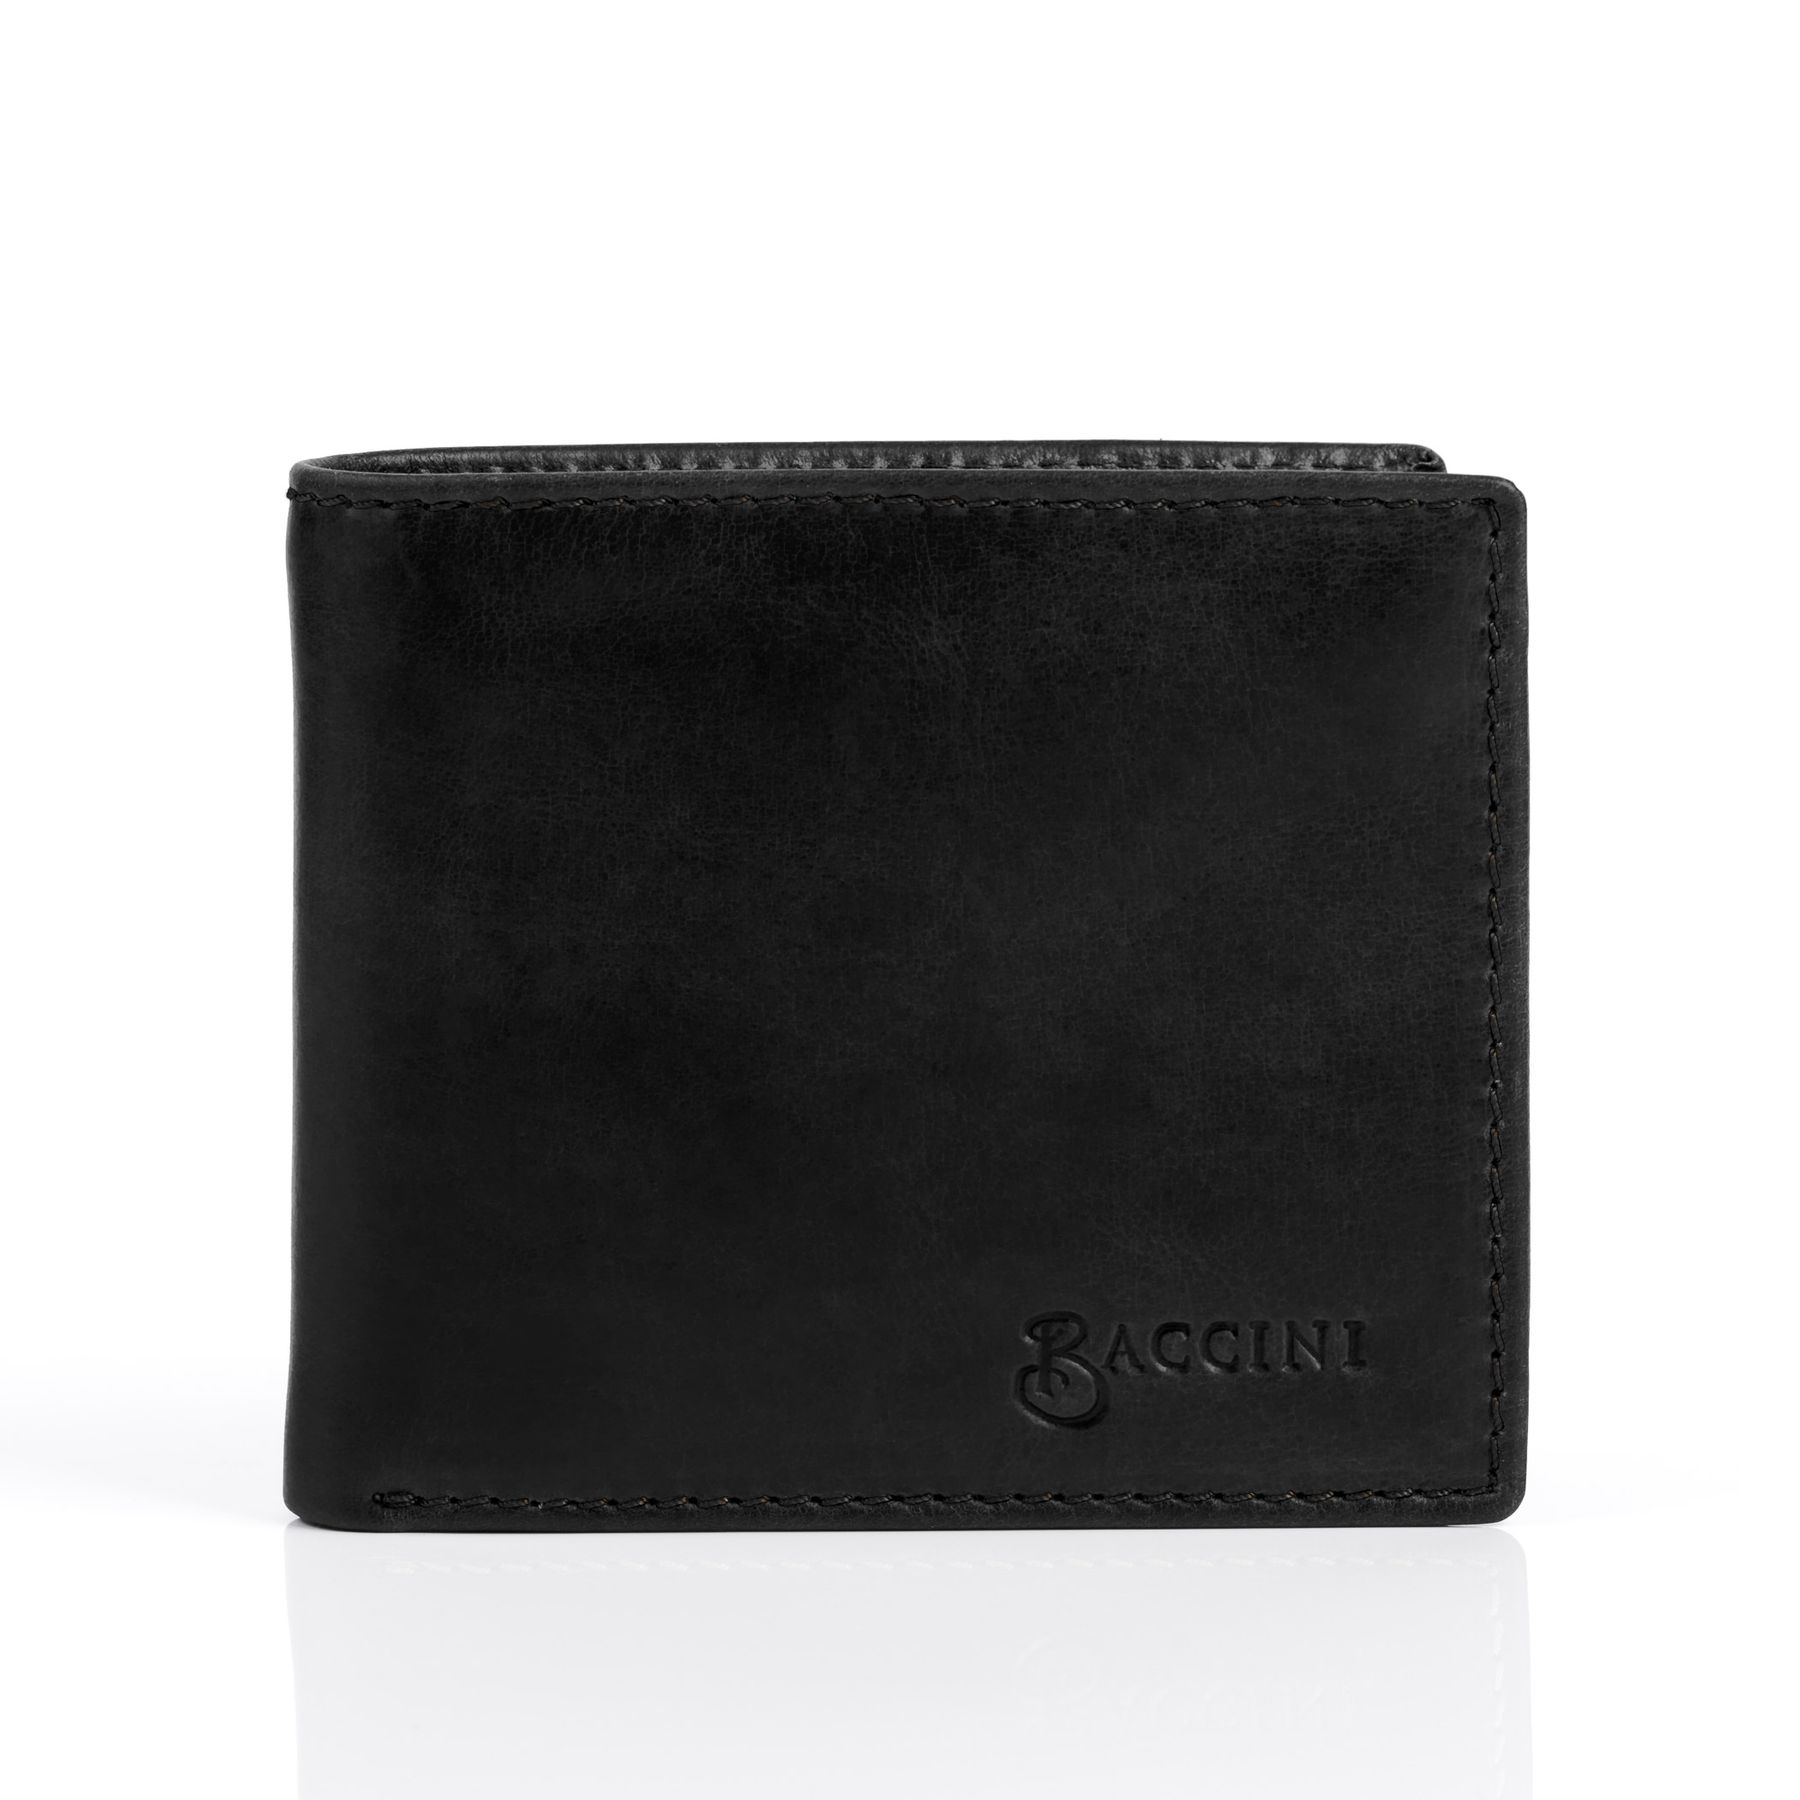 3540305c96e BACCINI billfold wallet Smooth Leather NATHAN black portemonnaie pocket  with multiple card-slots Accessoires Wallets